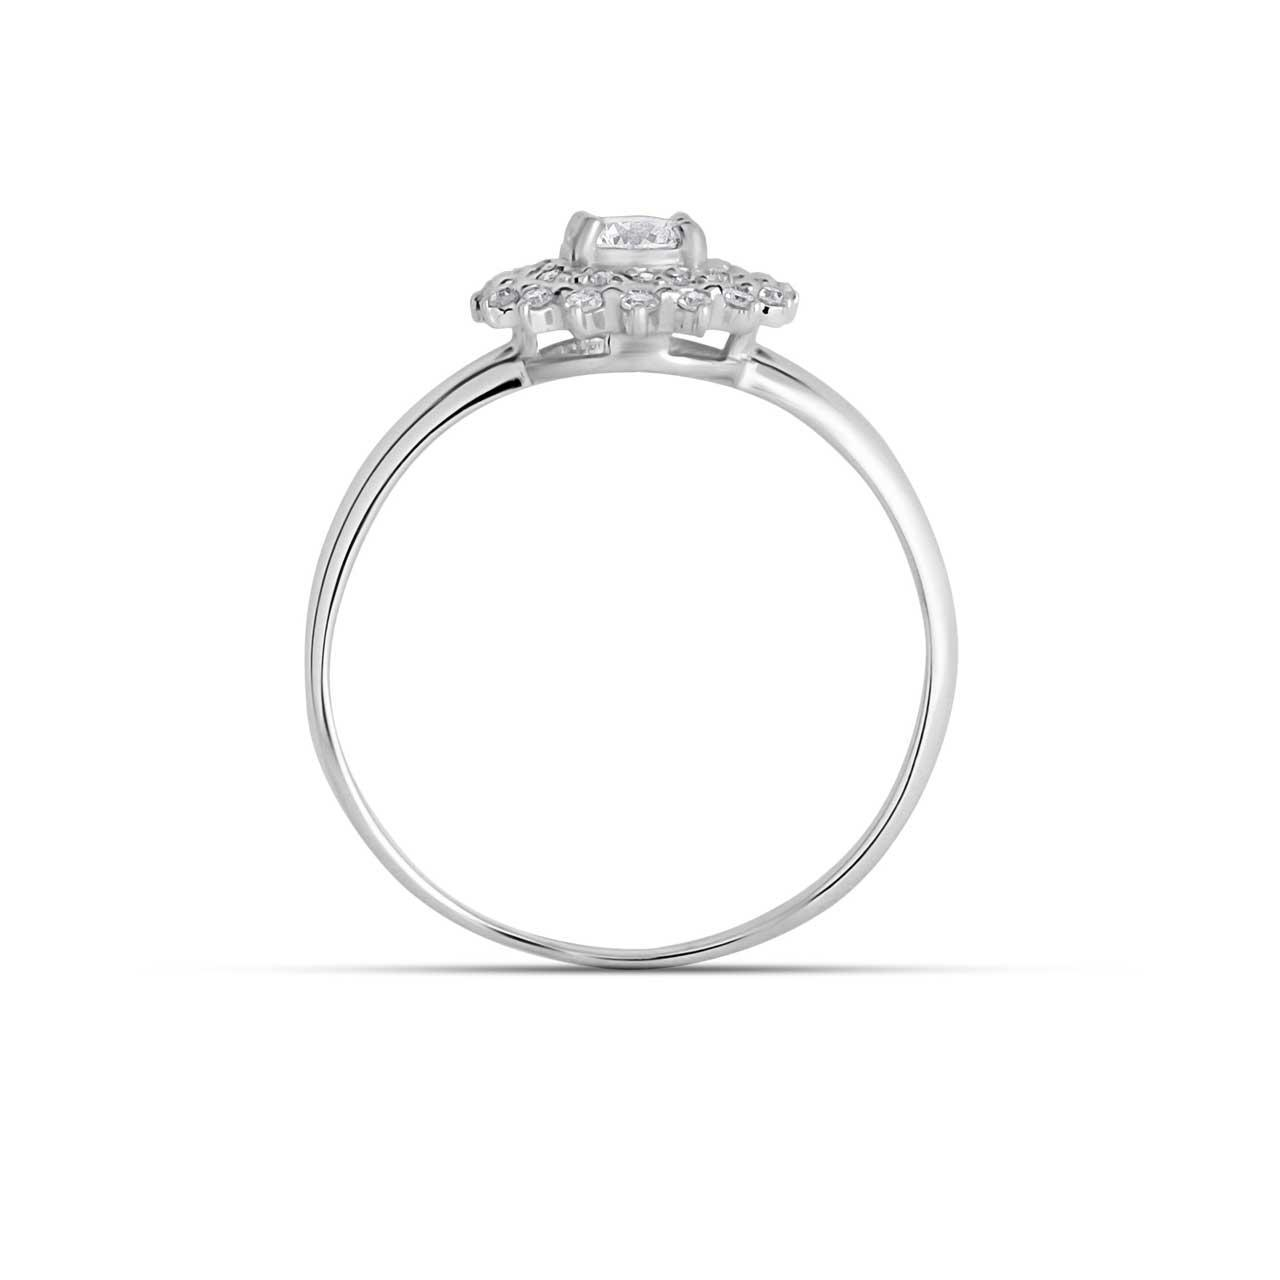 Hypoallergenic nickel-free 14K white gold diamond double halo ring. View 3